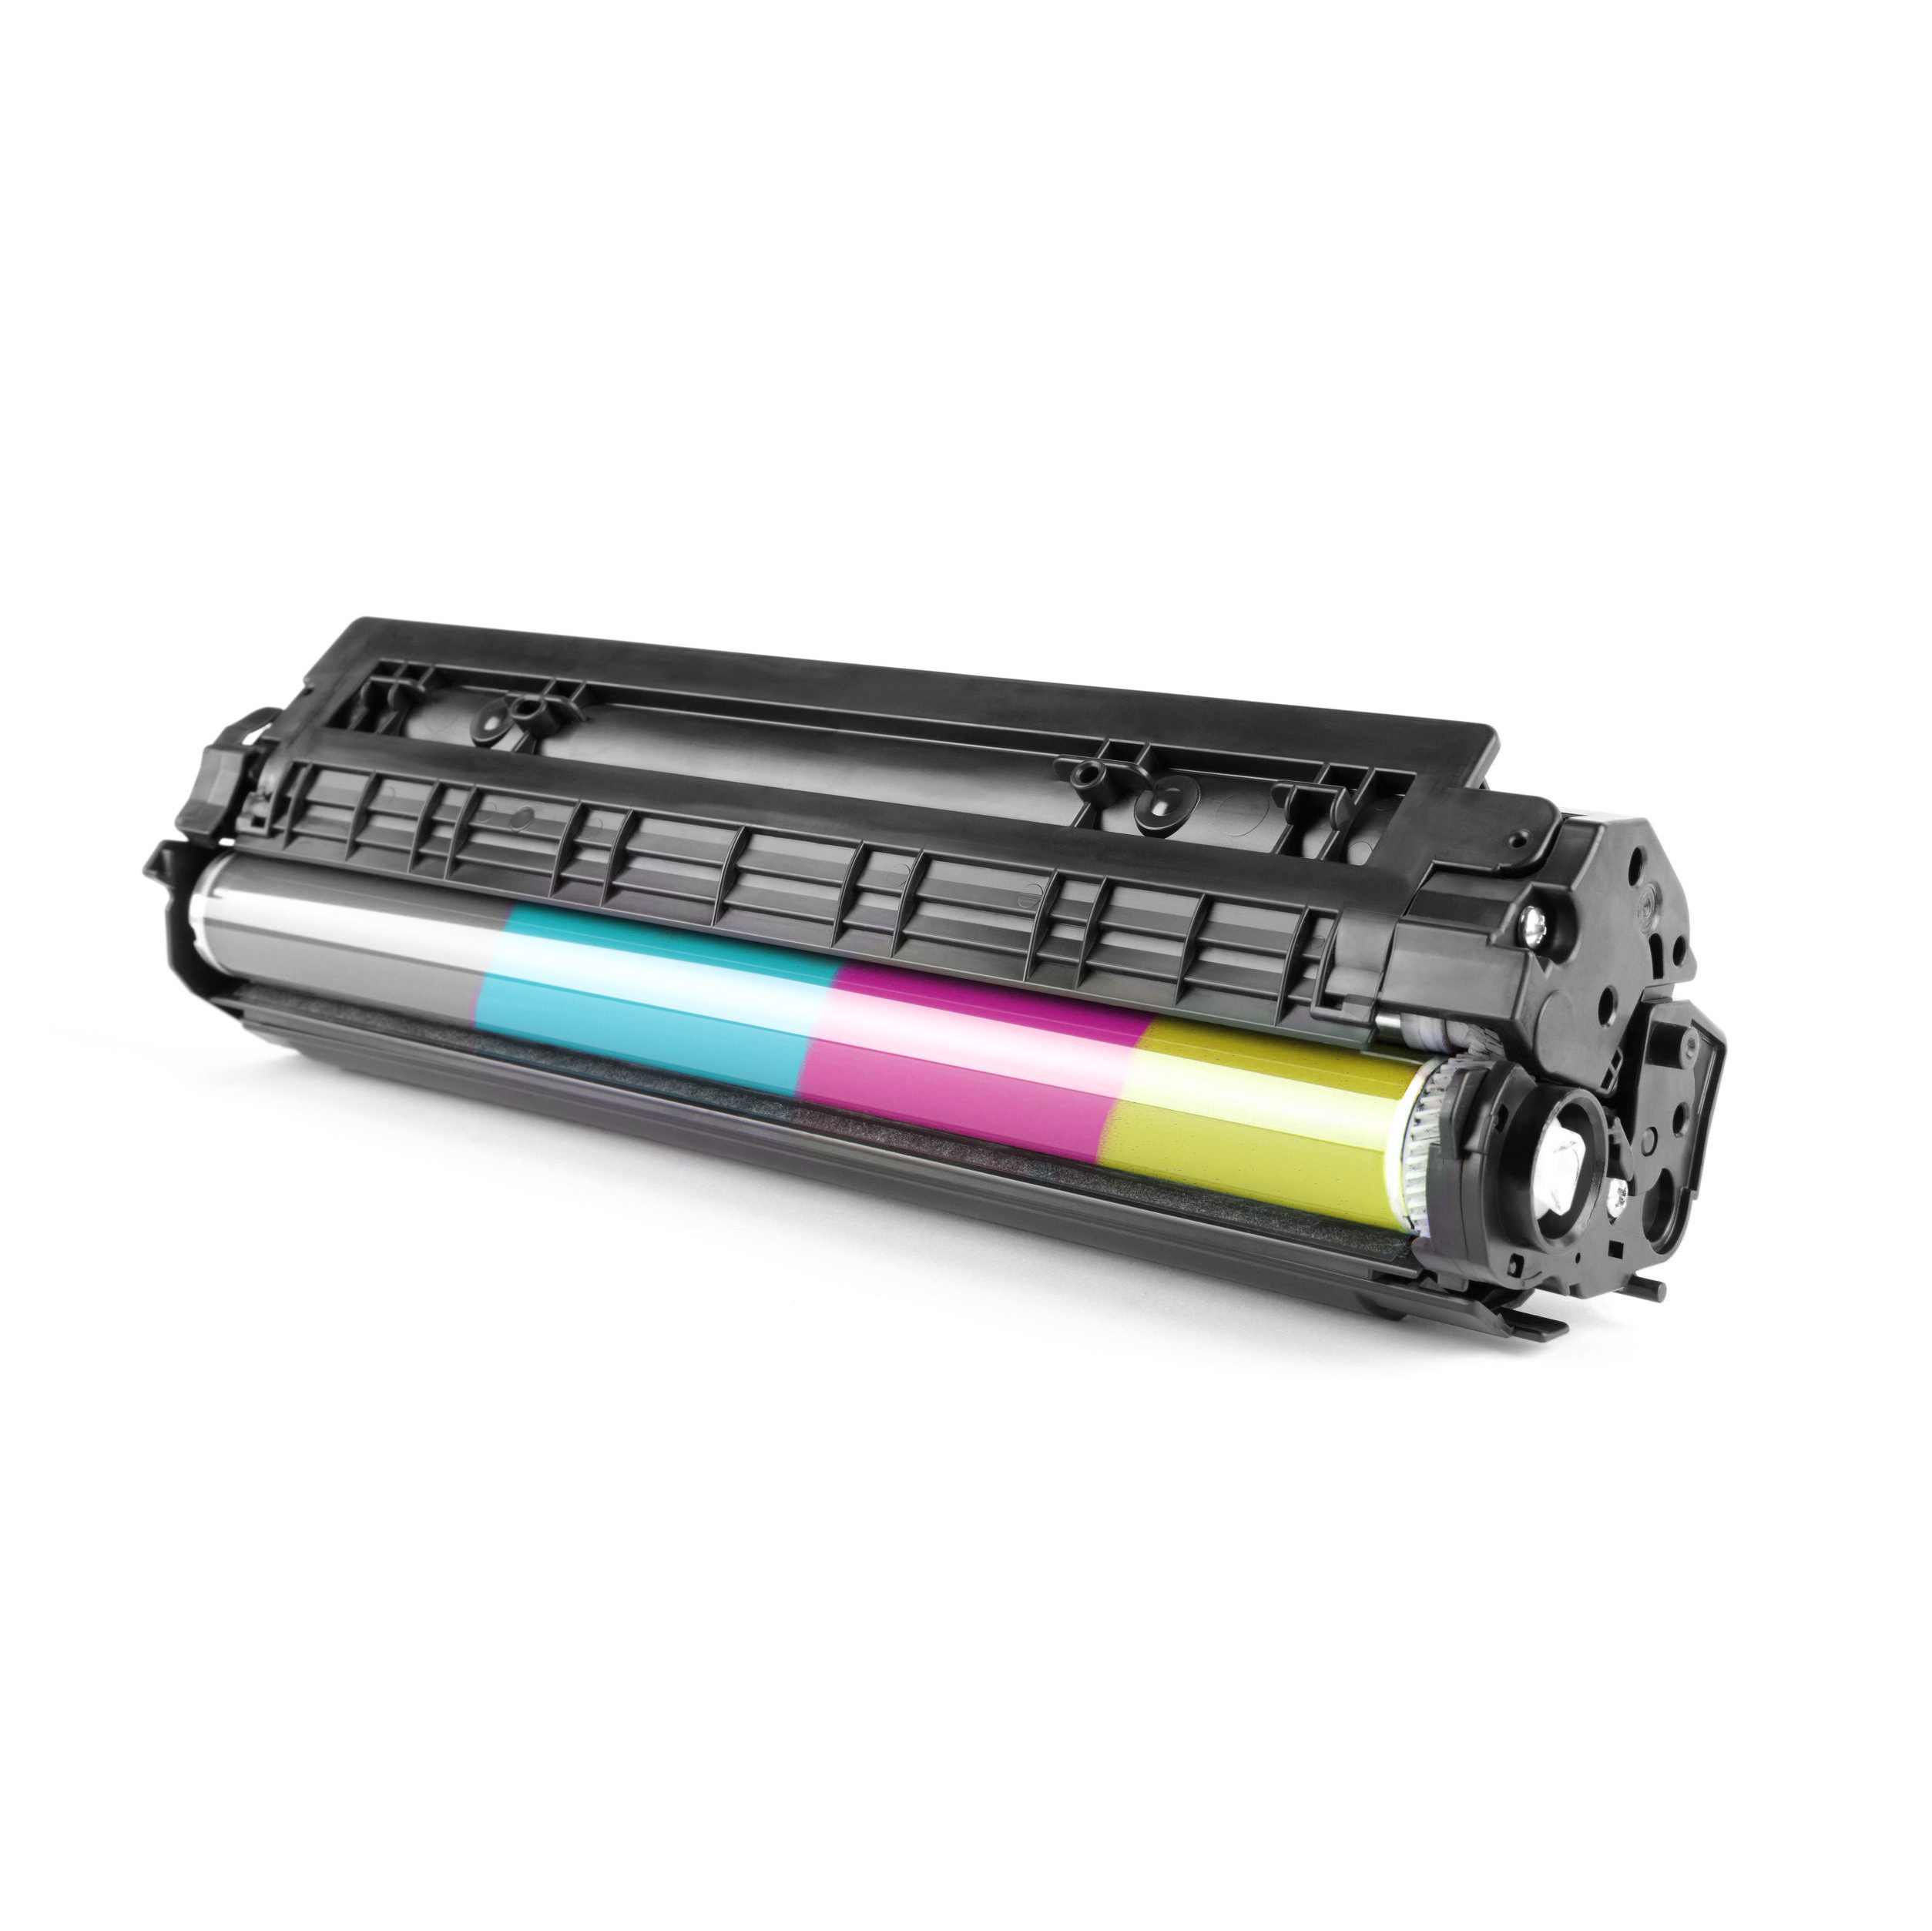 Brother Toner TN-130 XXL (1x 5.000 Seiten) black (3x 4.000 Seiten) yellow, magenta, cyan MultiPack Kompatibel